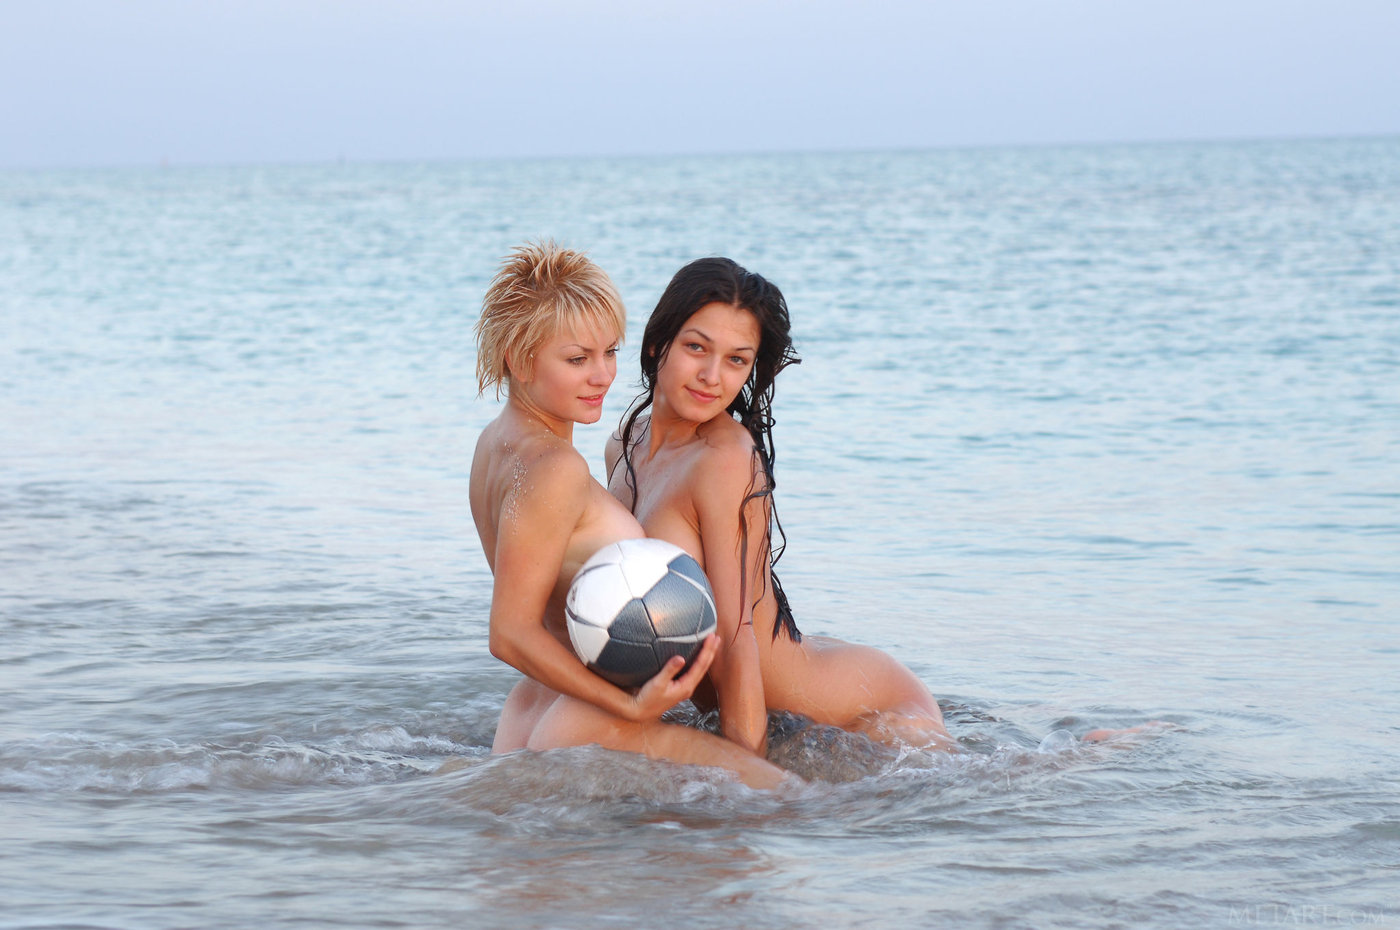 Miley cyrus lesbian hot and nude